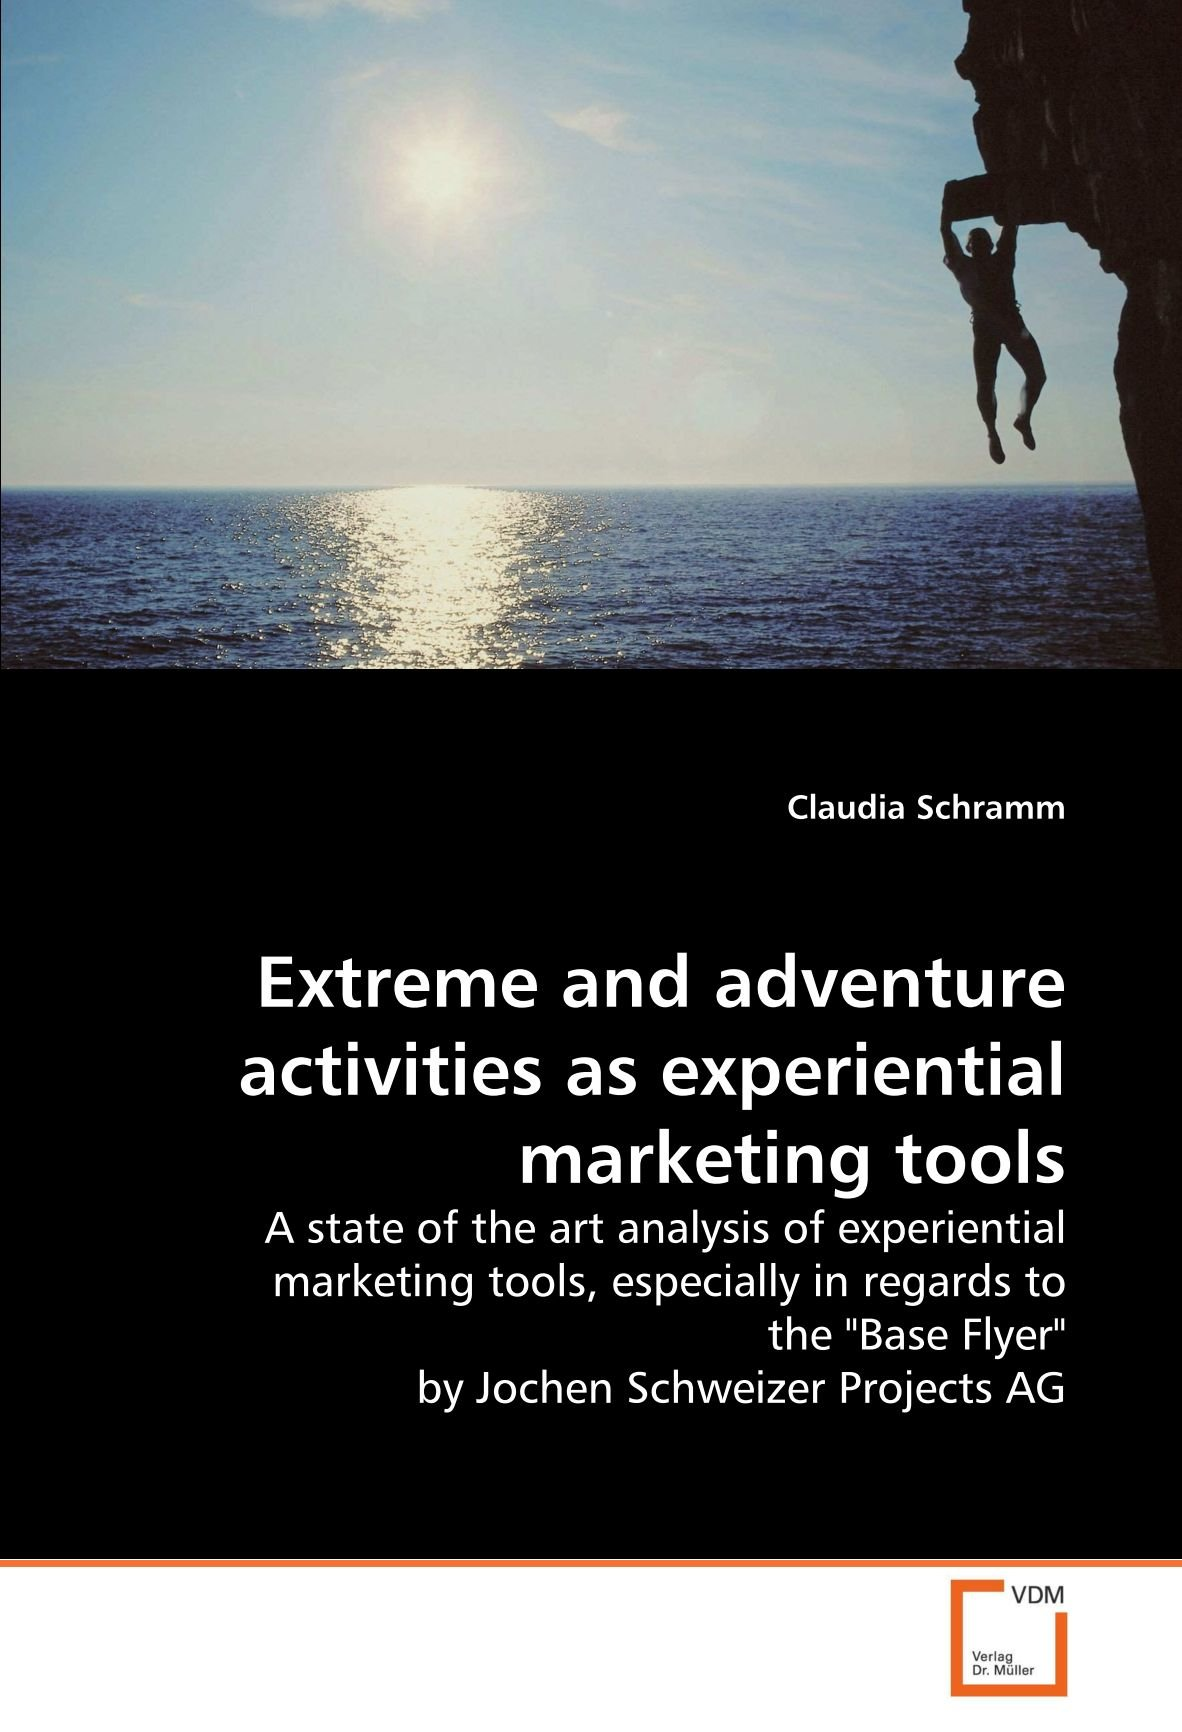 """Download Extreme and adventure activities as experiential marketing tools: A state of the art analysis of experiential marketing tools, especially in regards to the """"Base Flyer"""" by Jochen Schweizer Projects AG pdf epub"""